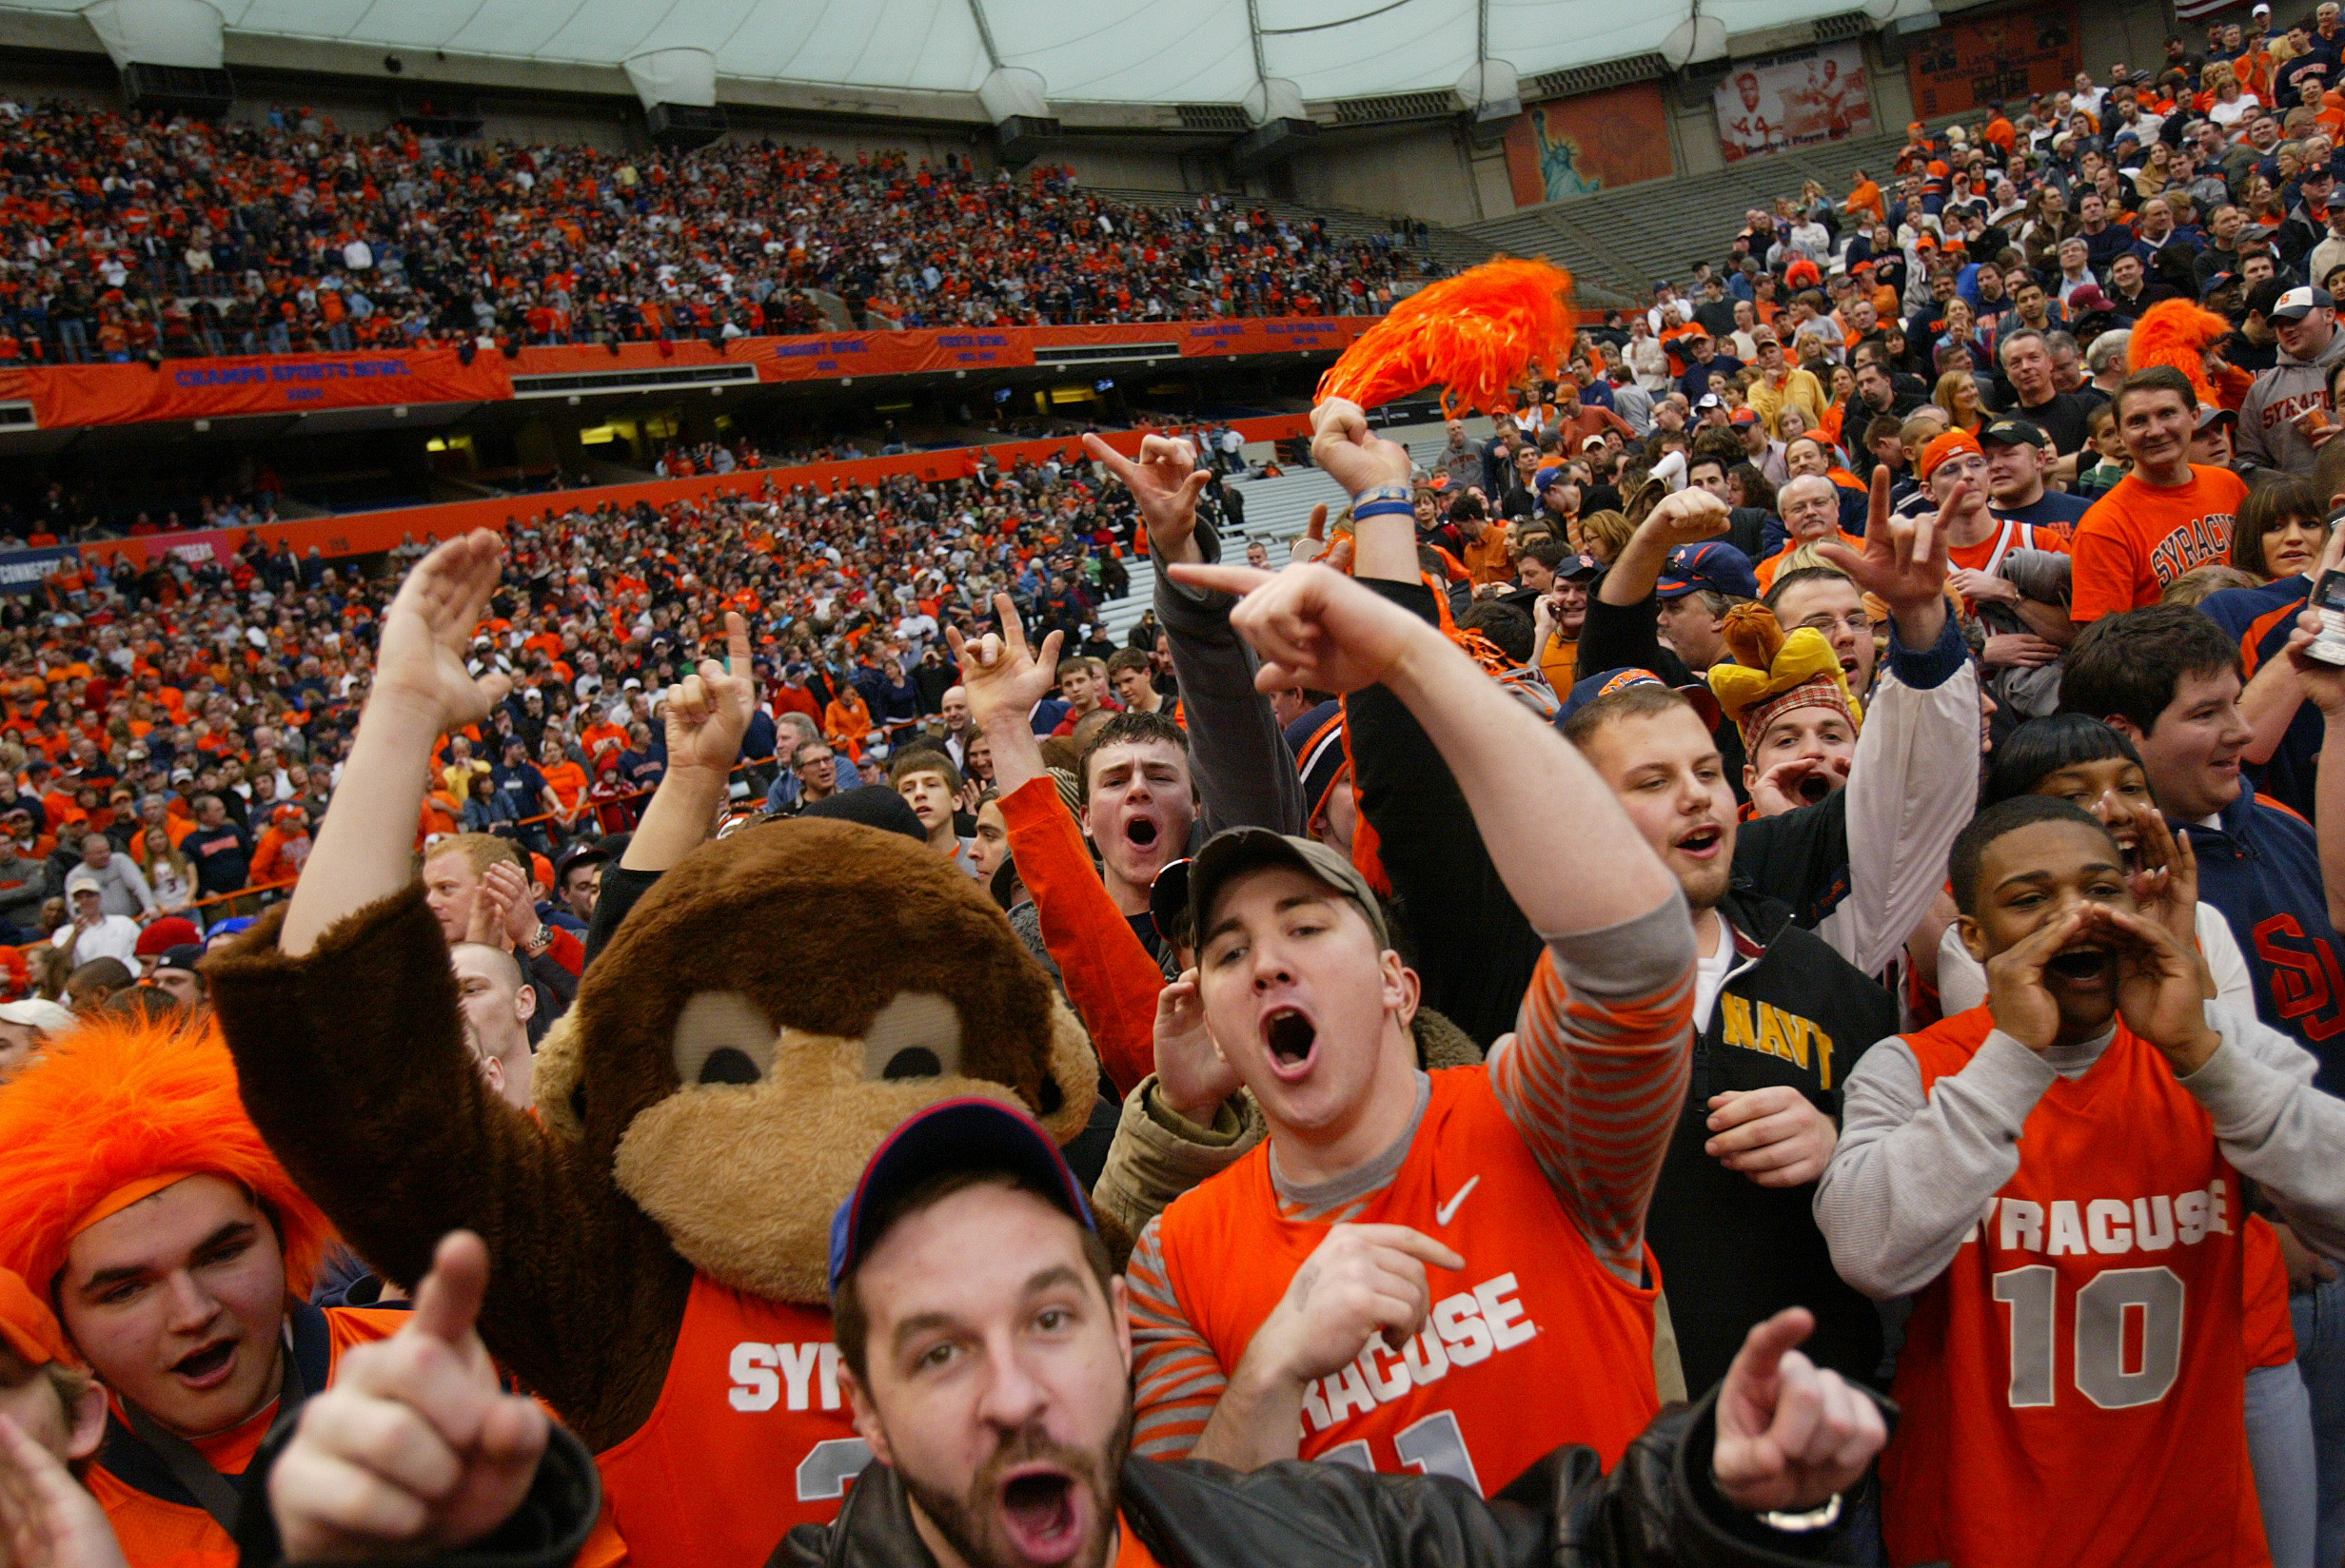 People cheer during the game between the Georgetown University Hoyas and the Syracuse Orange at the Carrier Dome February 16, 2008 in Syracuse, New York.